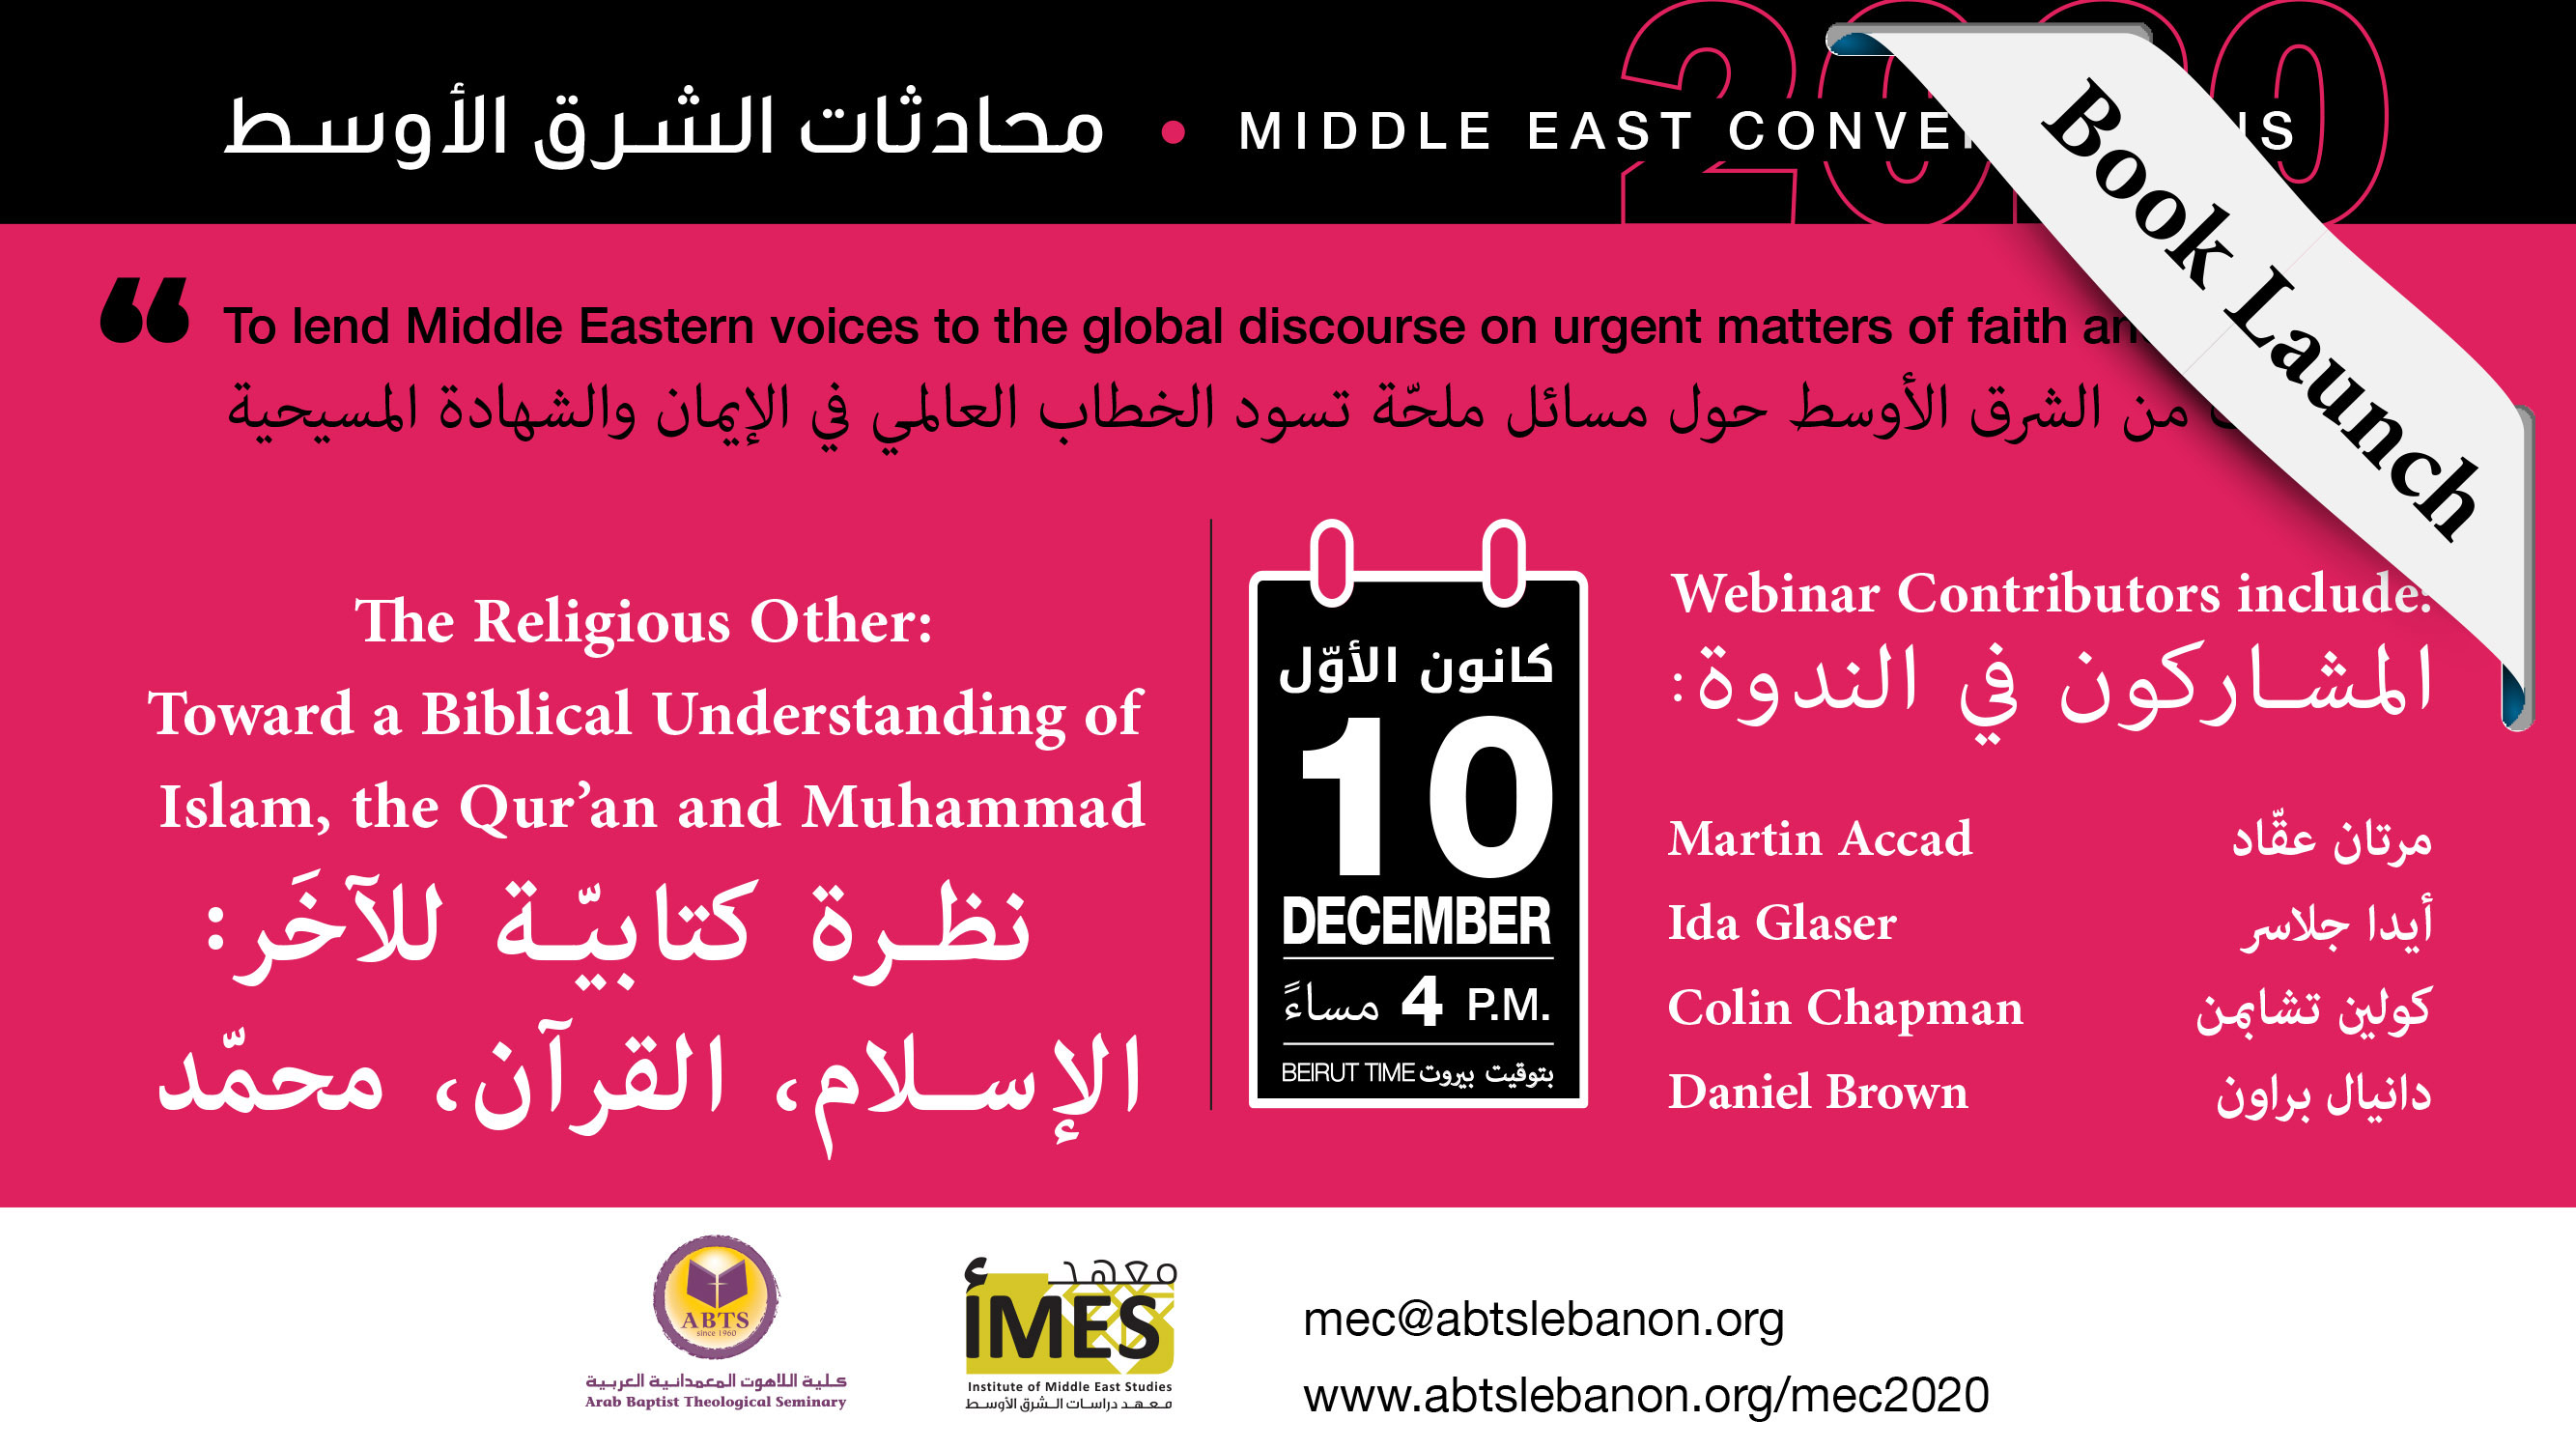 ABTS Hosts Final Session of the Middle East Conversation 2020